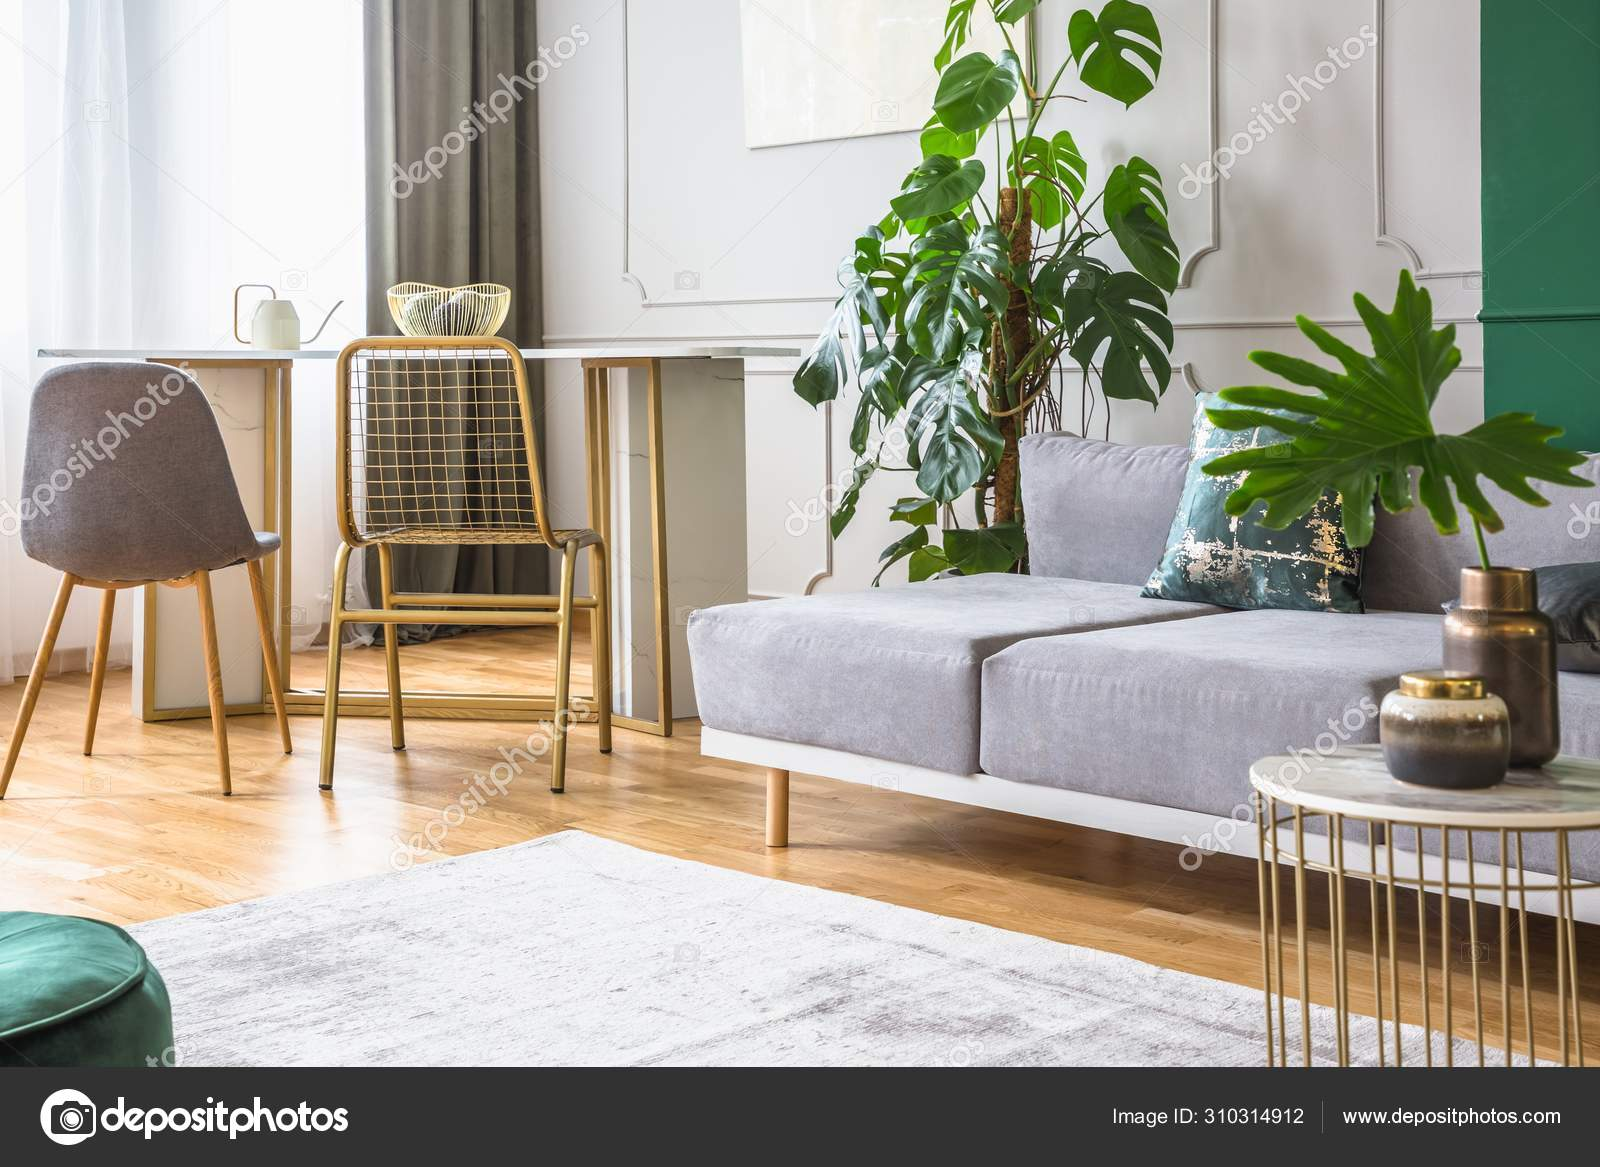 Fancy Golden Chair At Small Dining Table In Chic Living Room Stock Photo C Photographee Eu 310314912